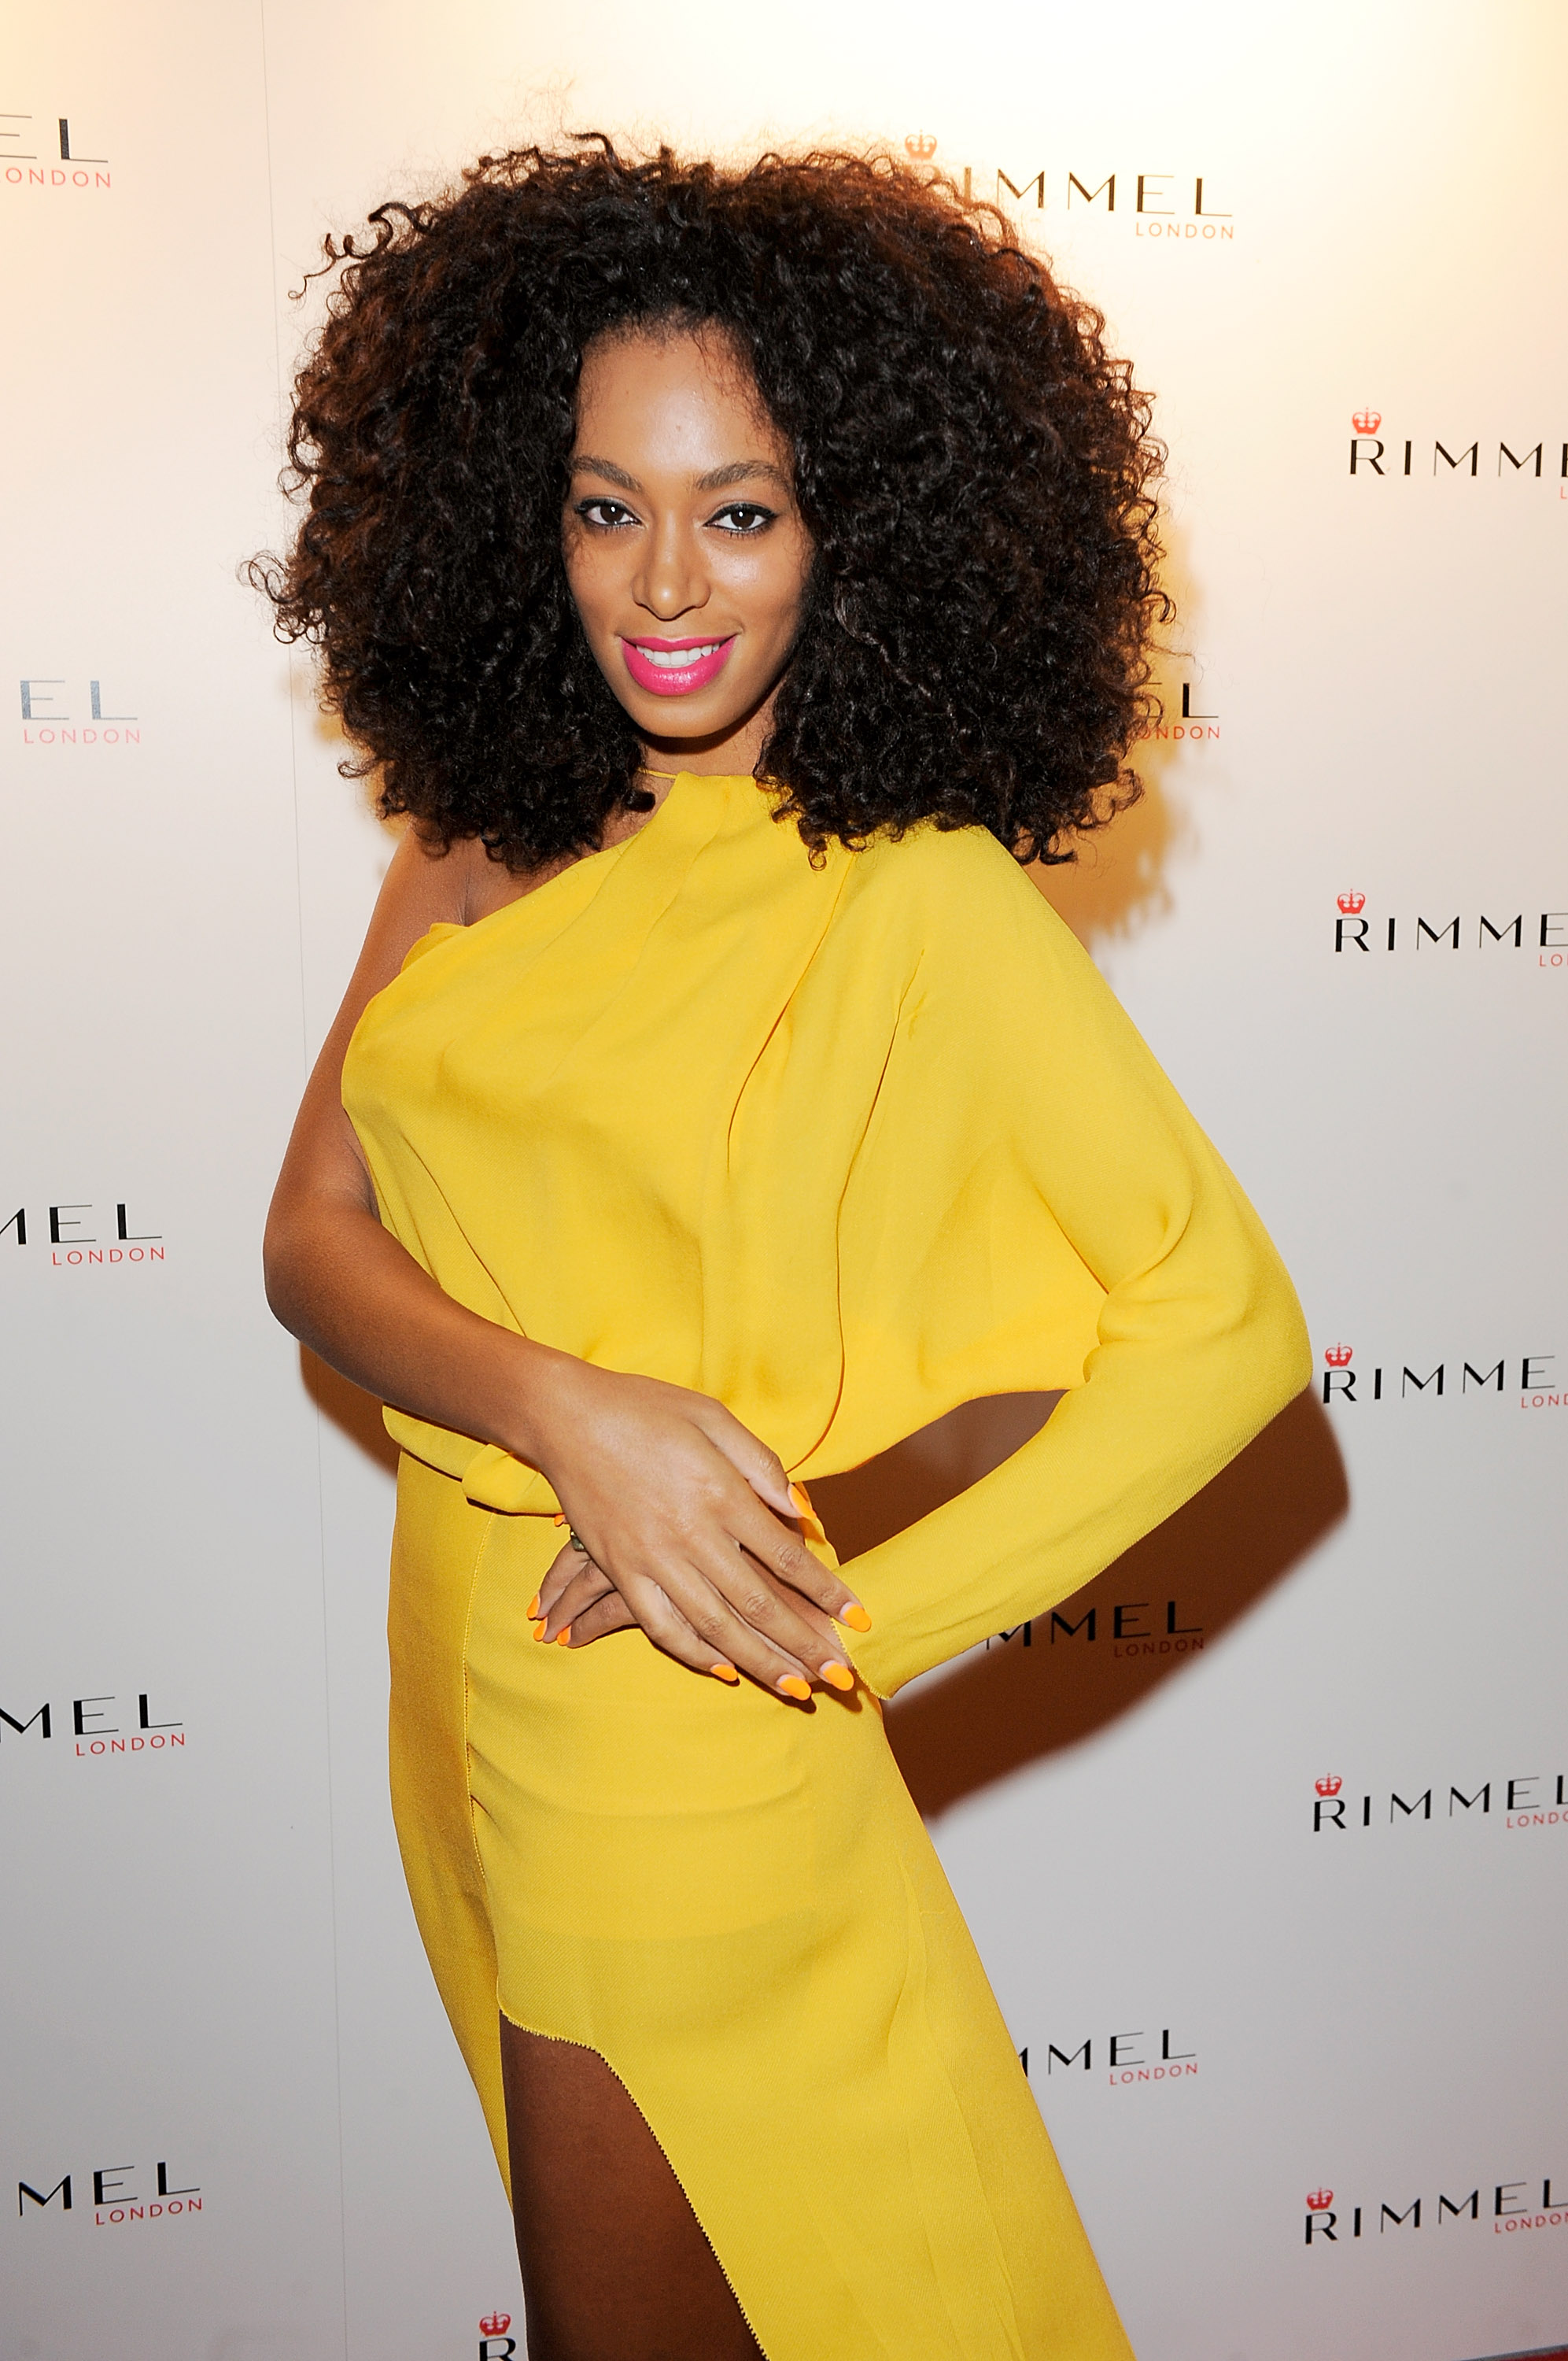 Solange Knowles Loses Wedding Ring During Mardi Gras Parade: Solange Knowles New Wedding Ring At Reisefeber.org